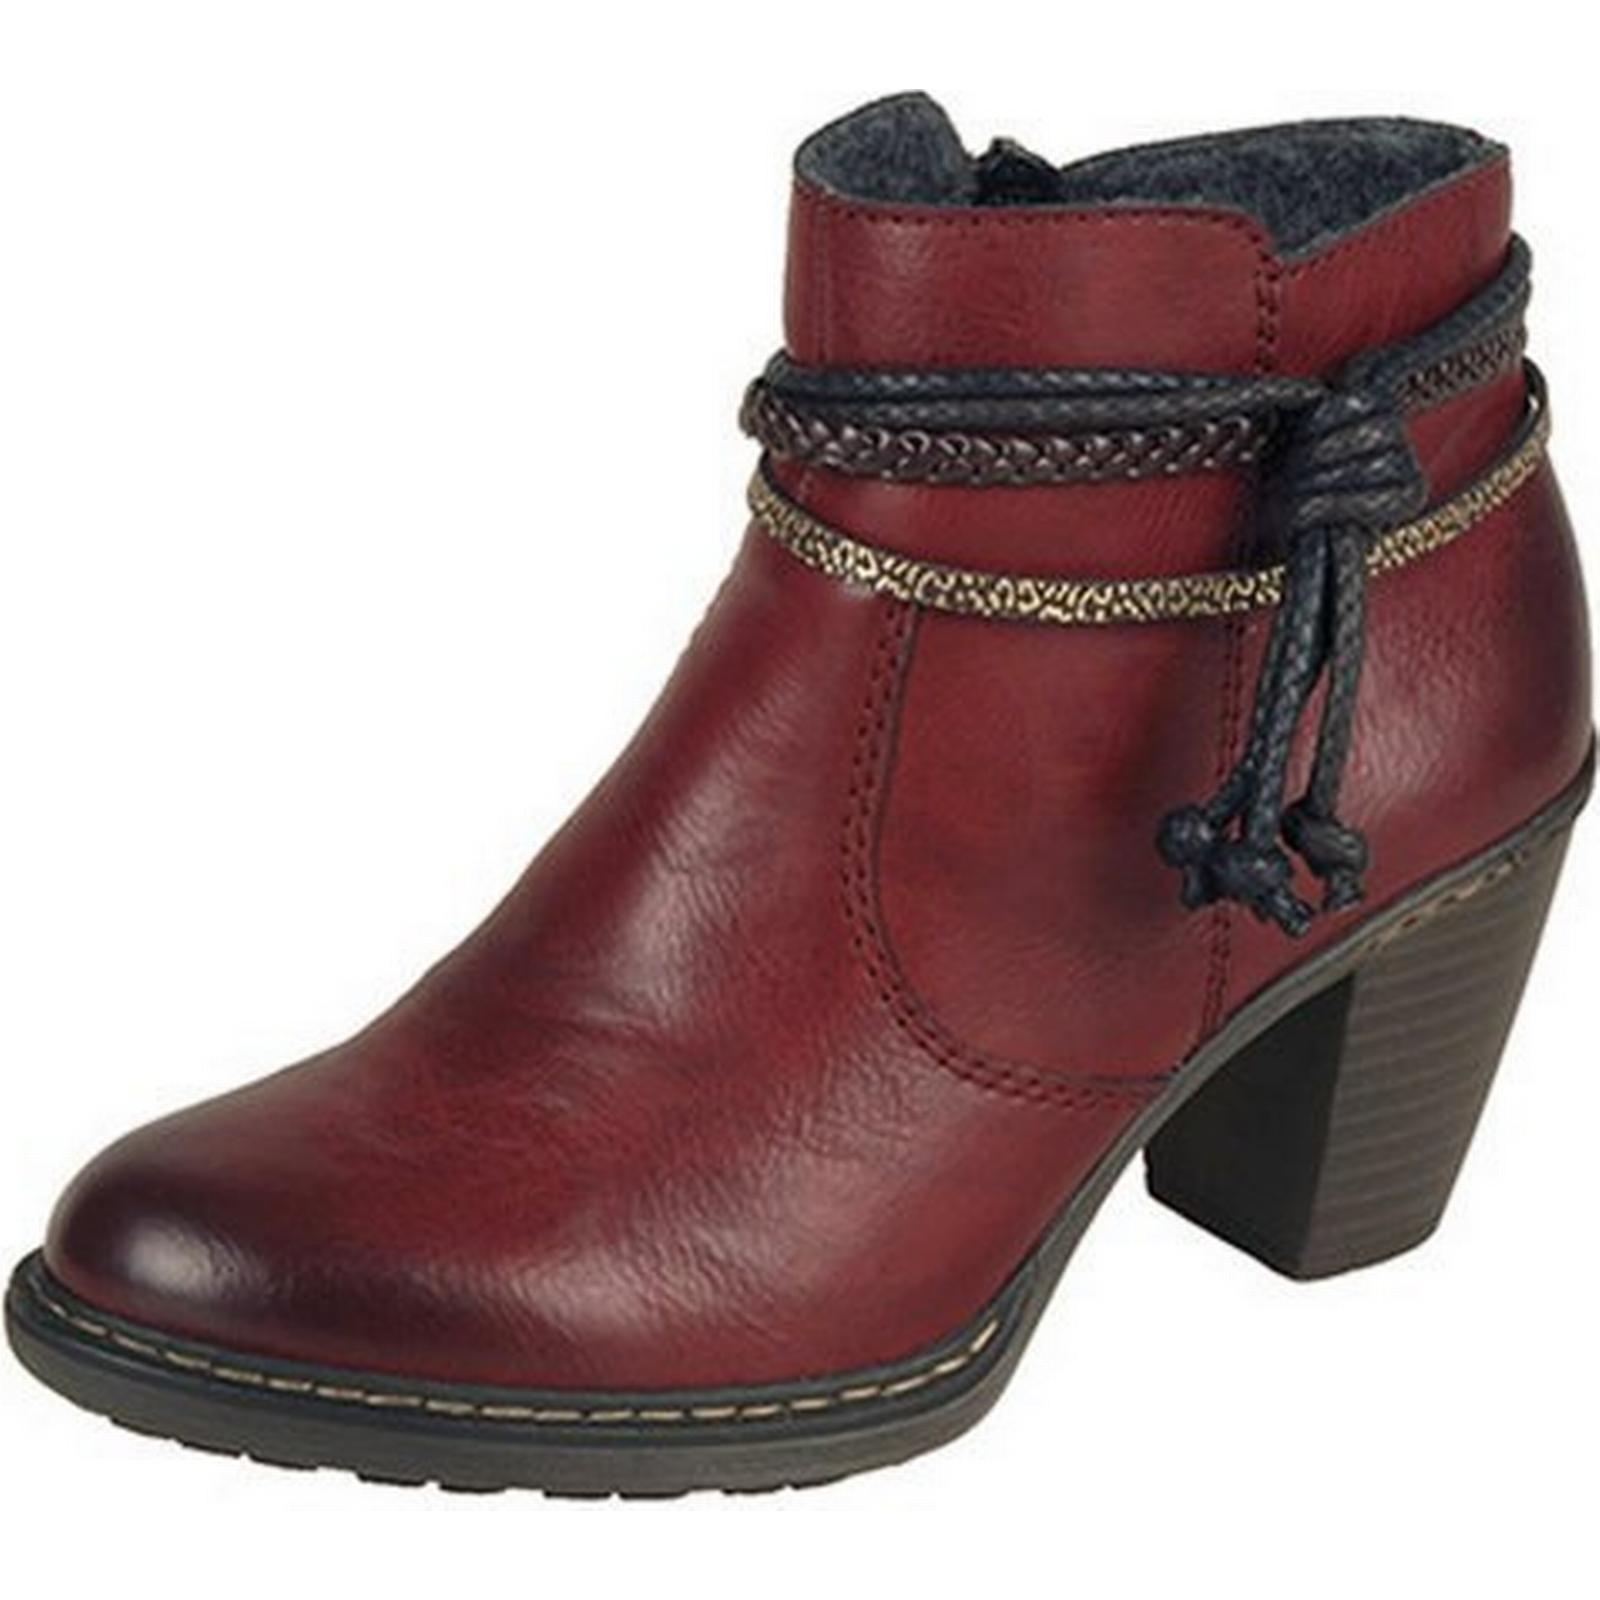 Rieker MARLOW LADIES RIEKER SHORT ANKLE BOOT BOOT ANKLE Size: 36, Colour: RED c0be4e